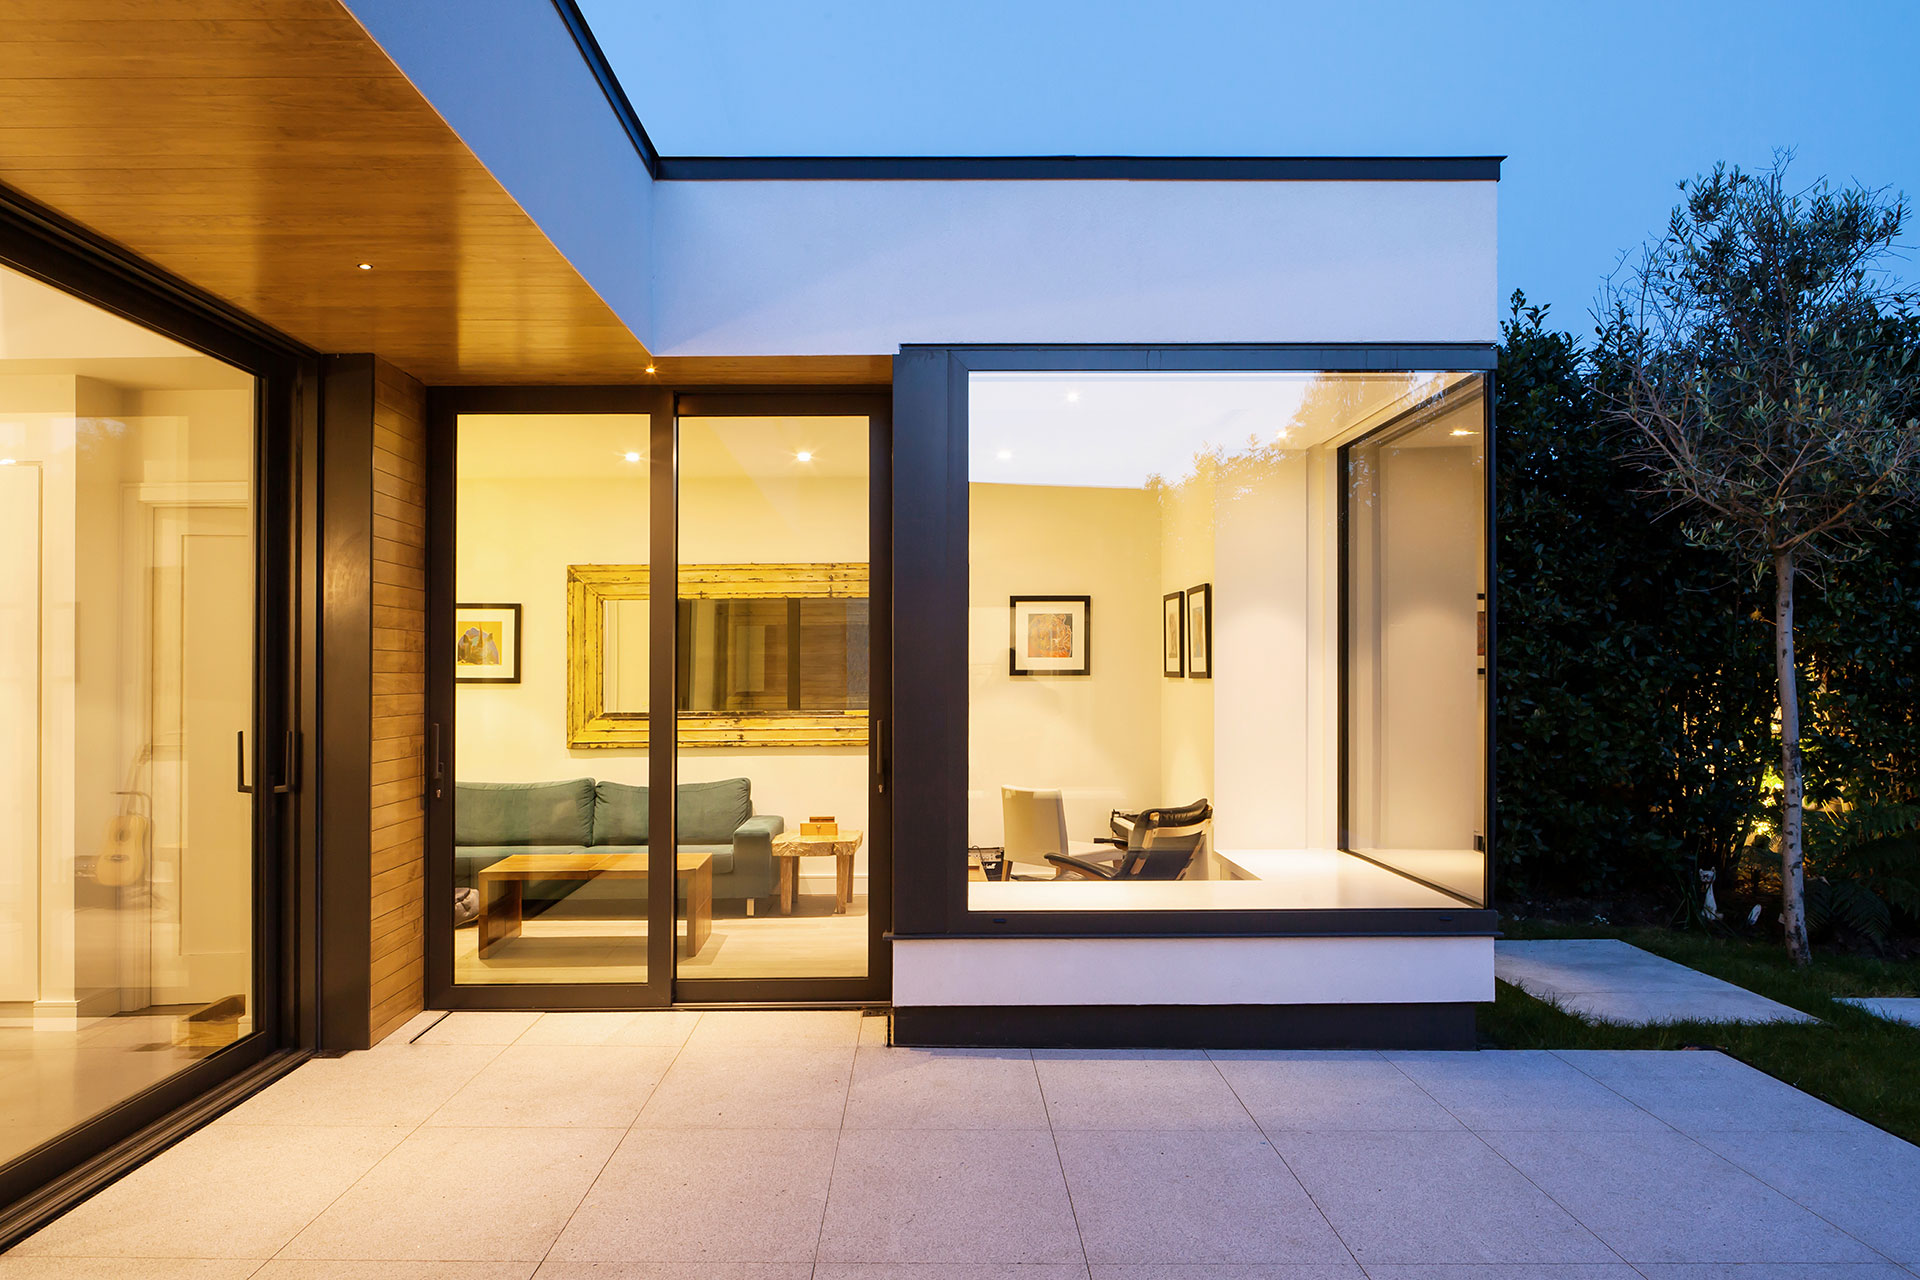 courtyard complete refurbishment and extension of a standard two